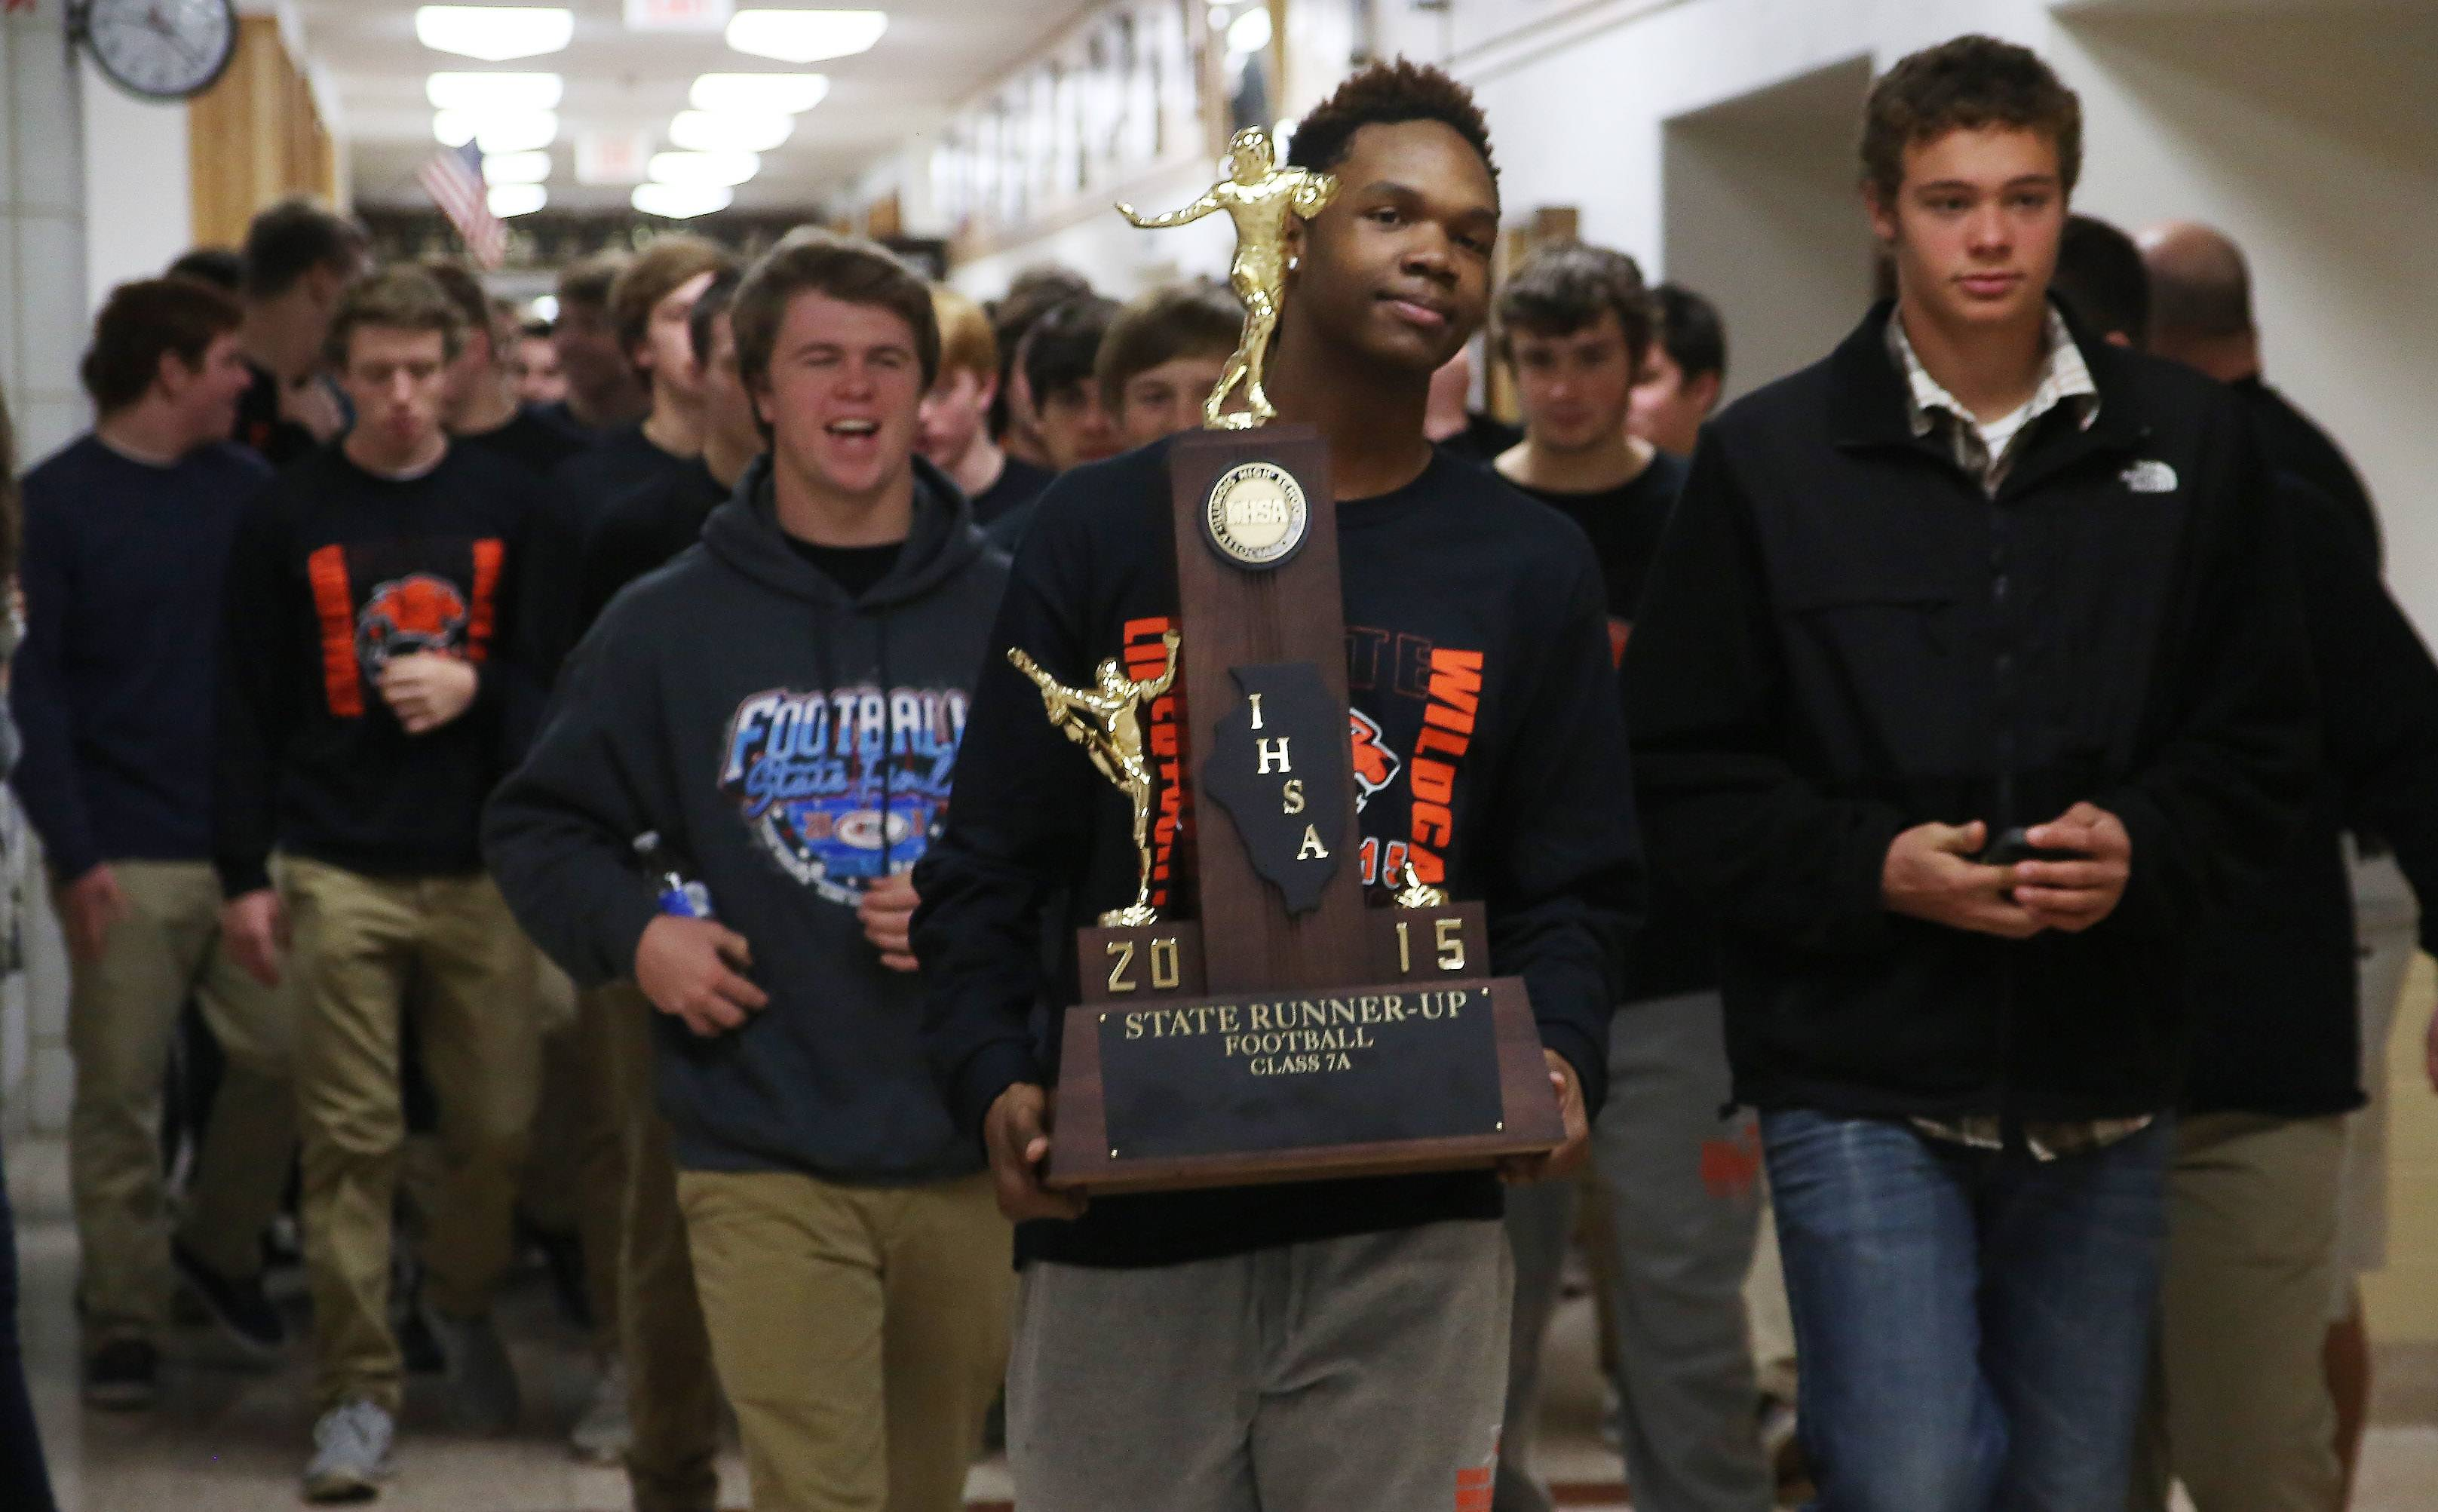 Libertyville High School wide receiver Carl Heard carries the IHSA Class 7A state championship runner-up trophy as the football team is cheered while parading through the school Monday. The team finished the season with a 13-1 record.